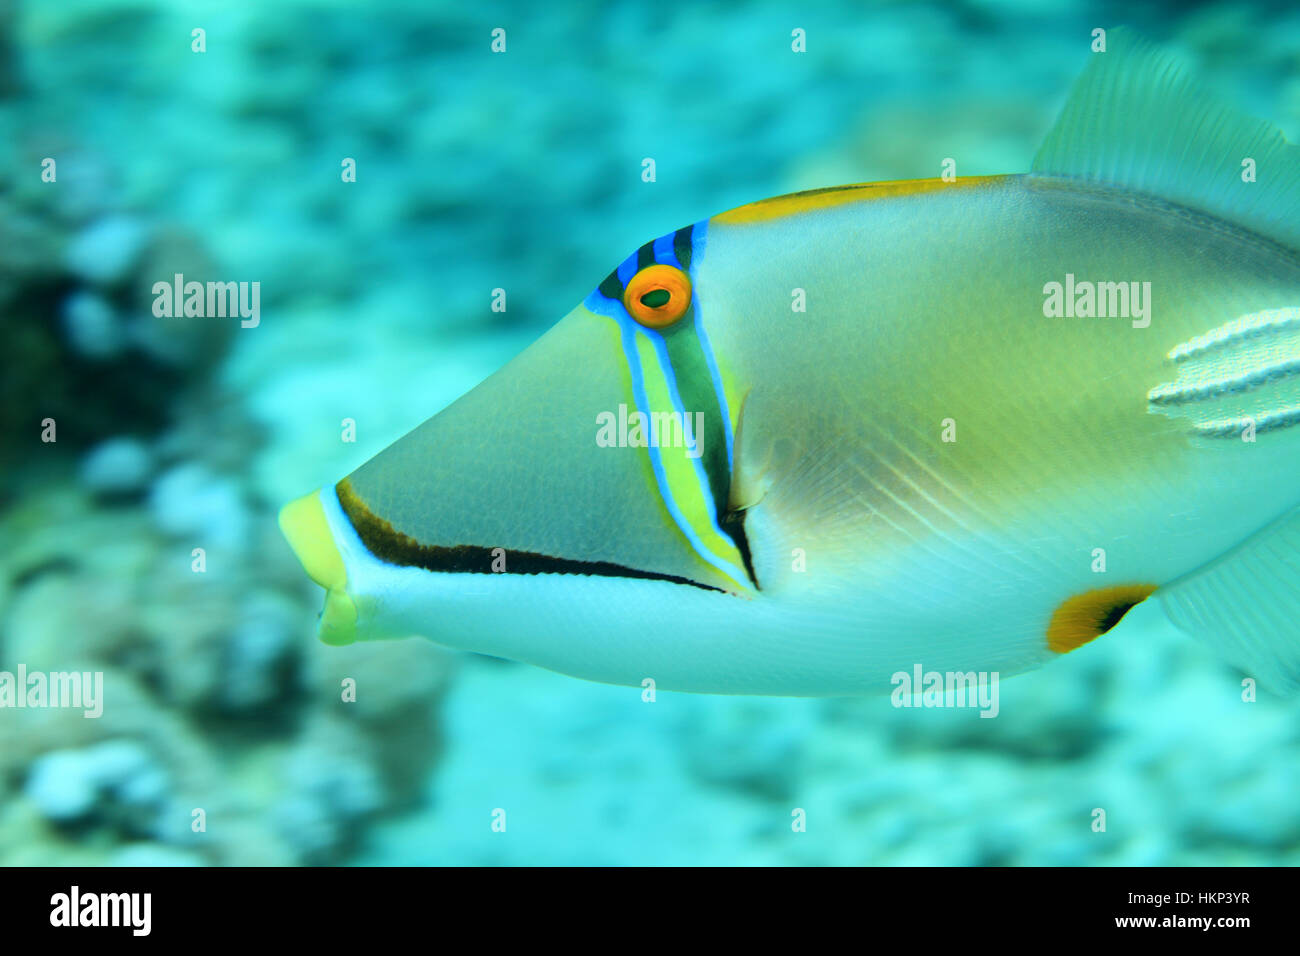 Picasso triggerfish (Rhinecanthus assasi) underwater in the coral reef of the Red Sea - Stock Image